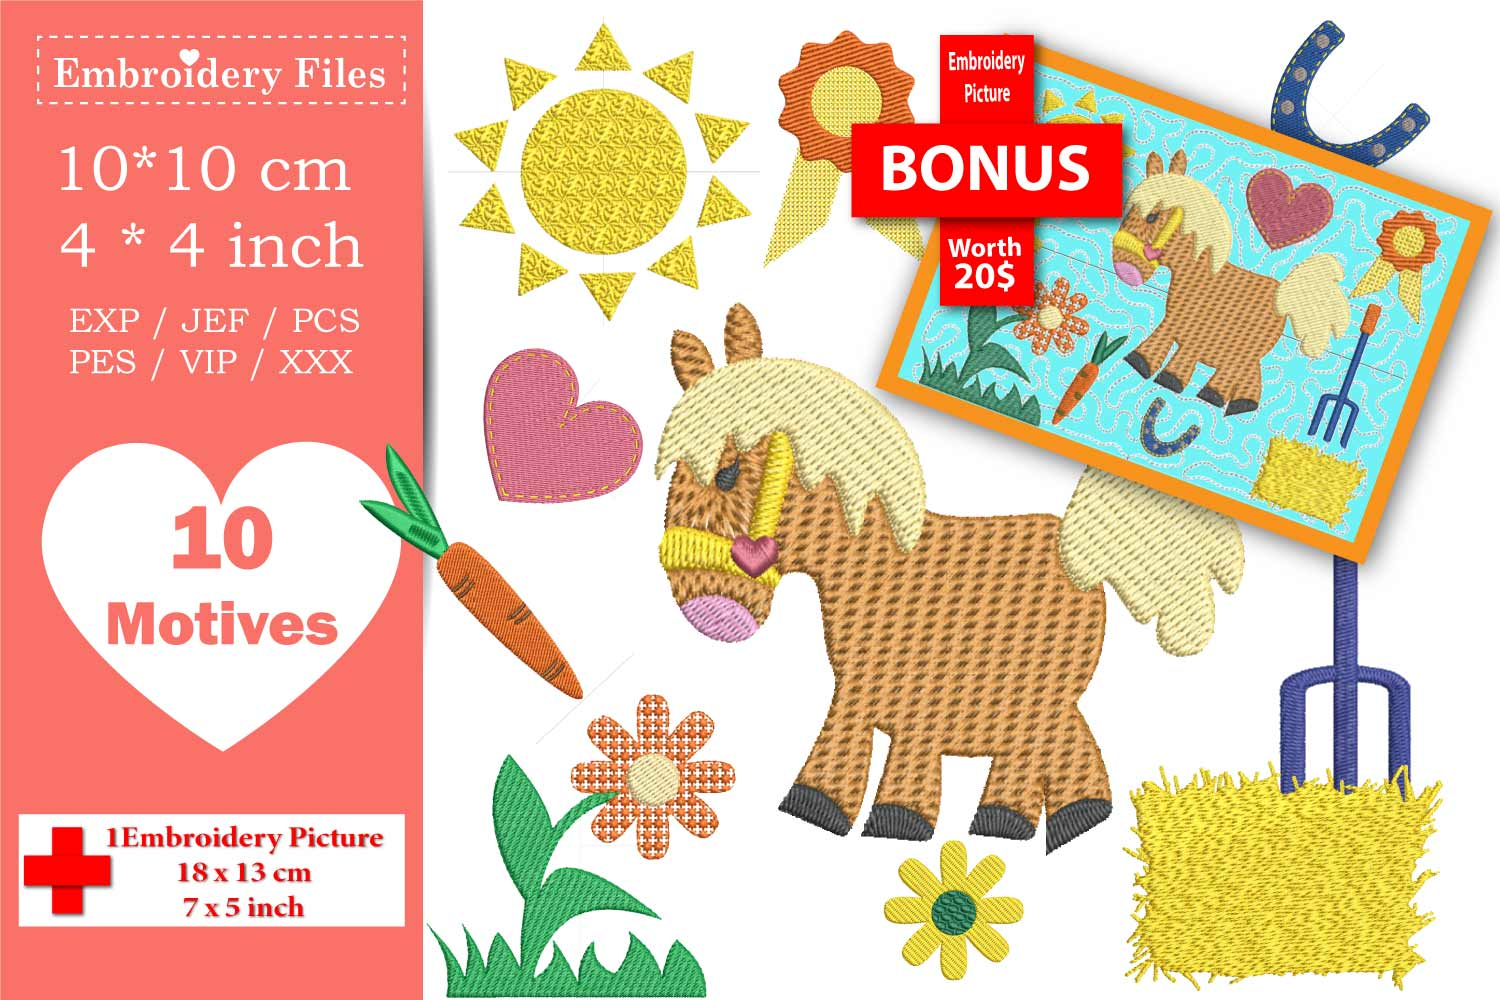 My lovely Pony - Embroidery Files - 10 Motives example image 1